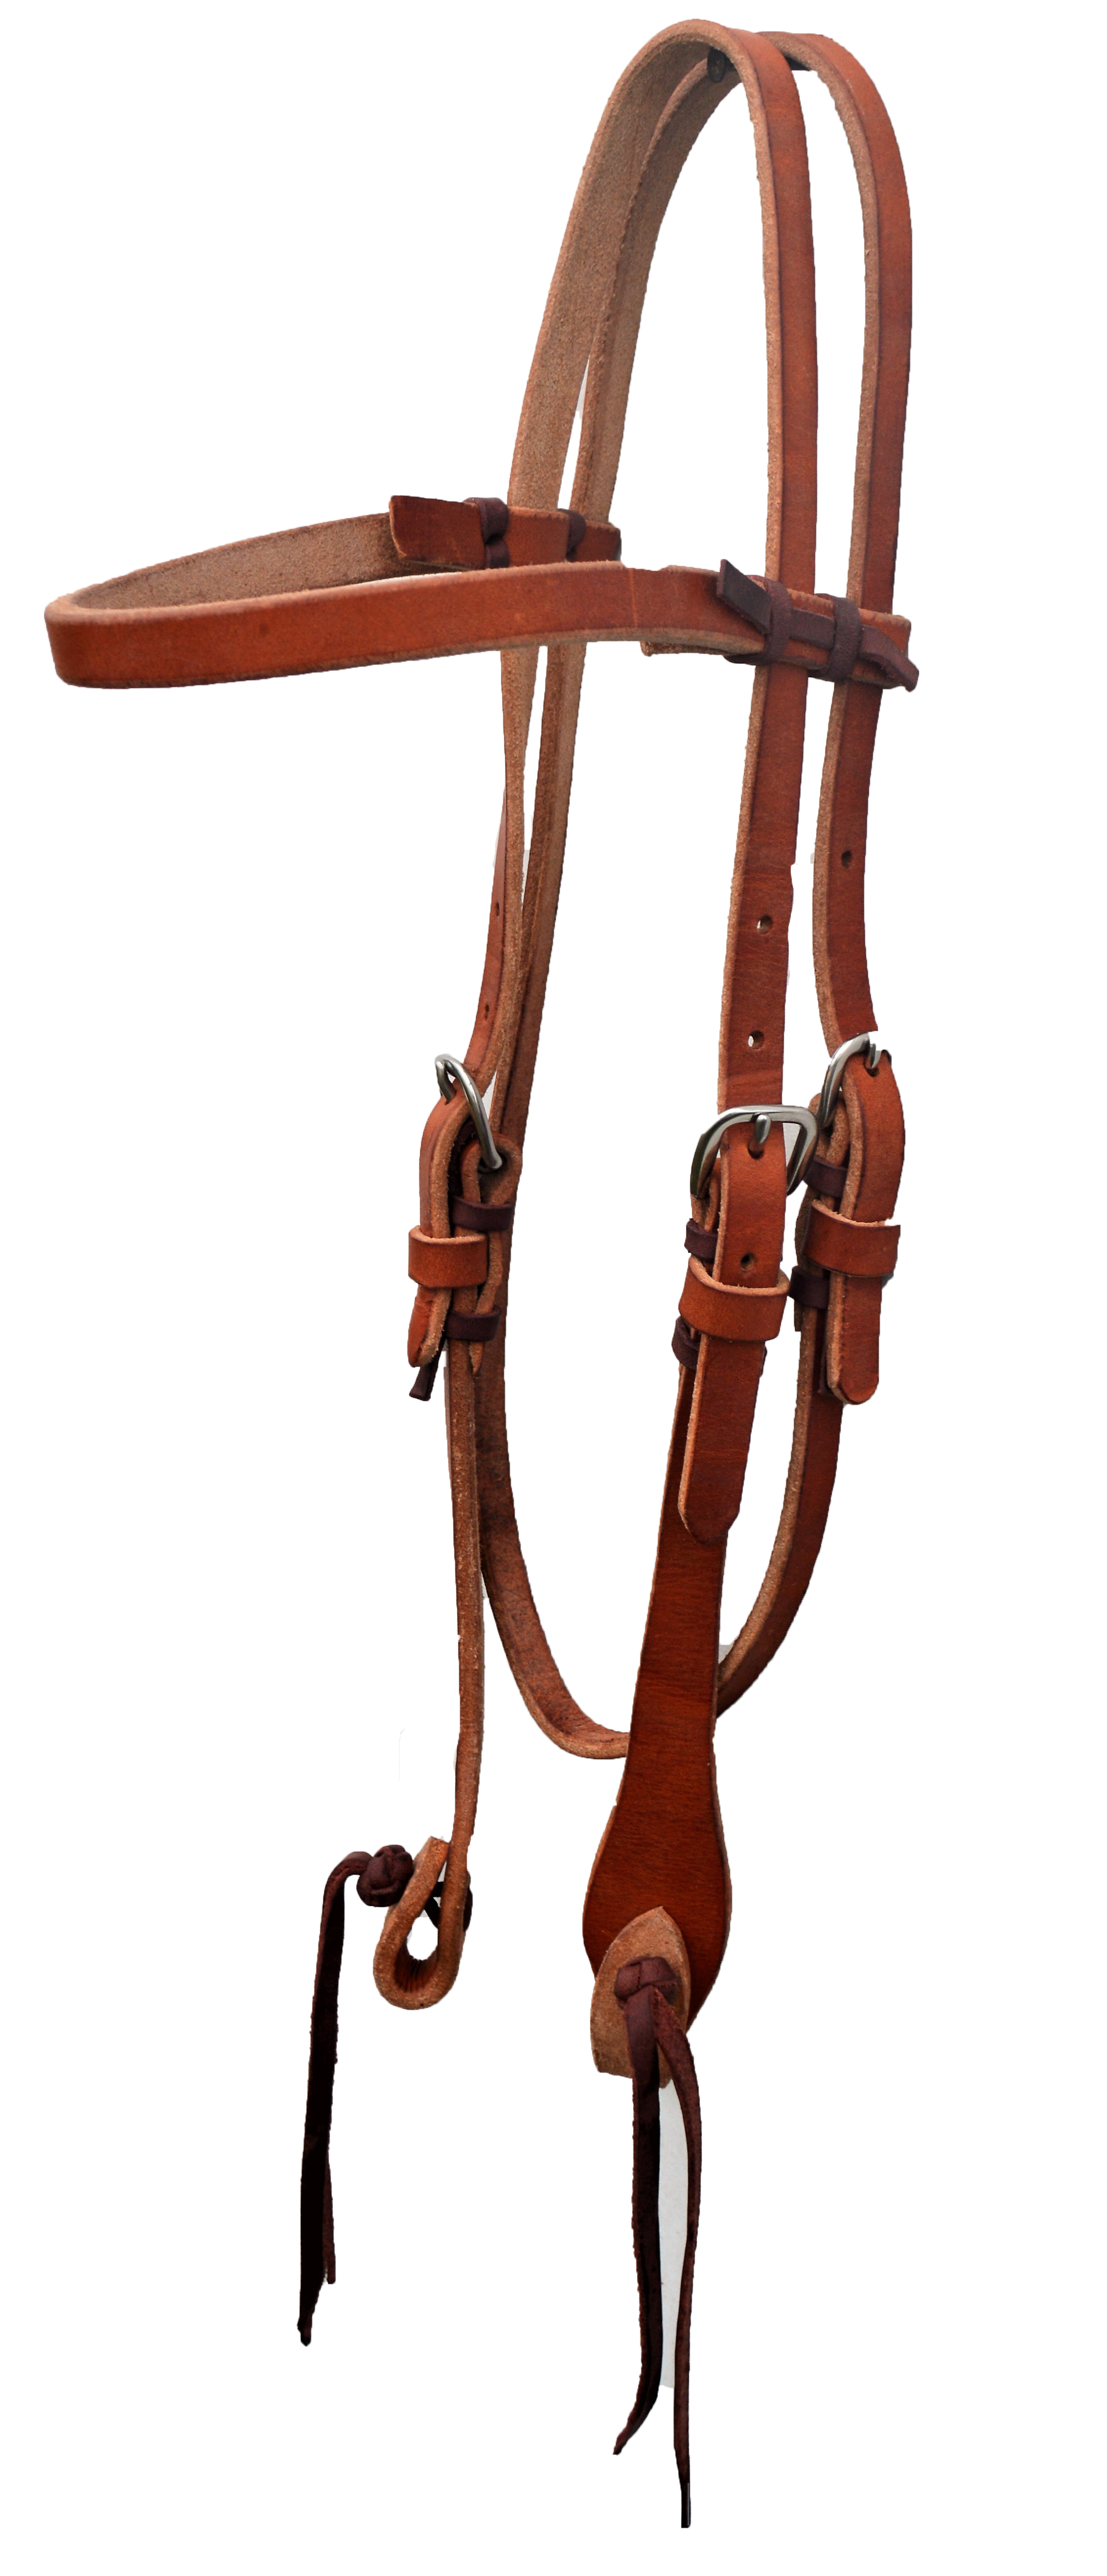 E-2032-PK Elite headstall with pineapple knot